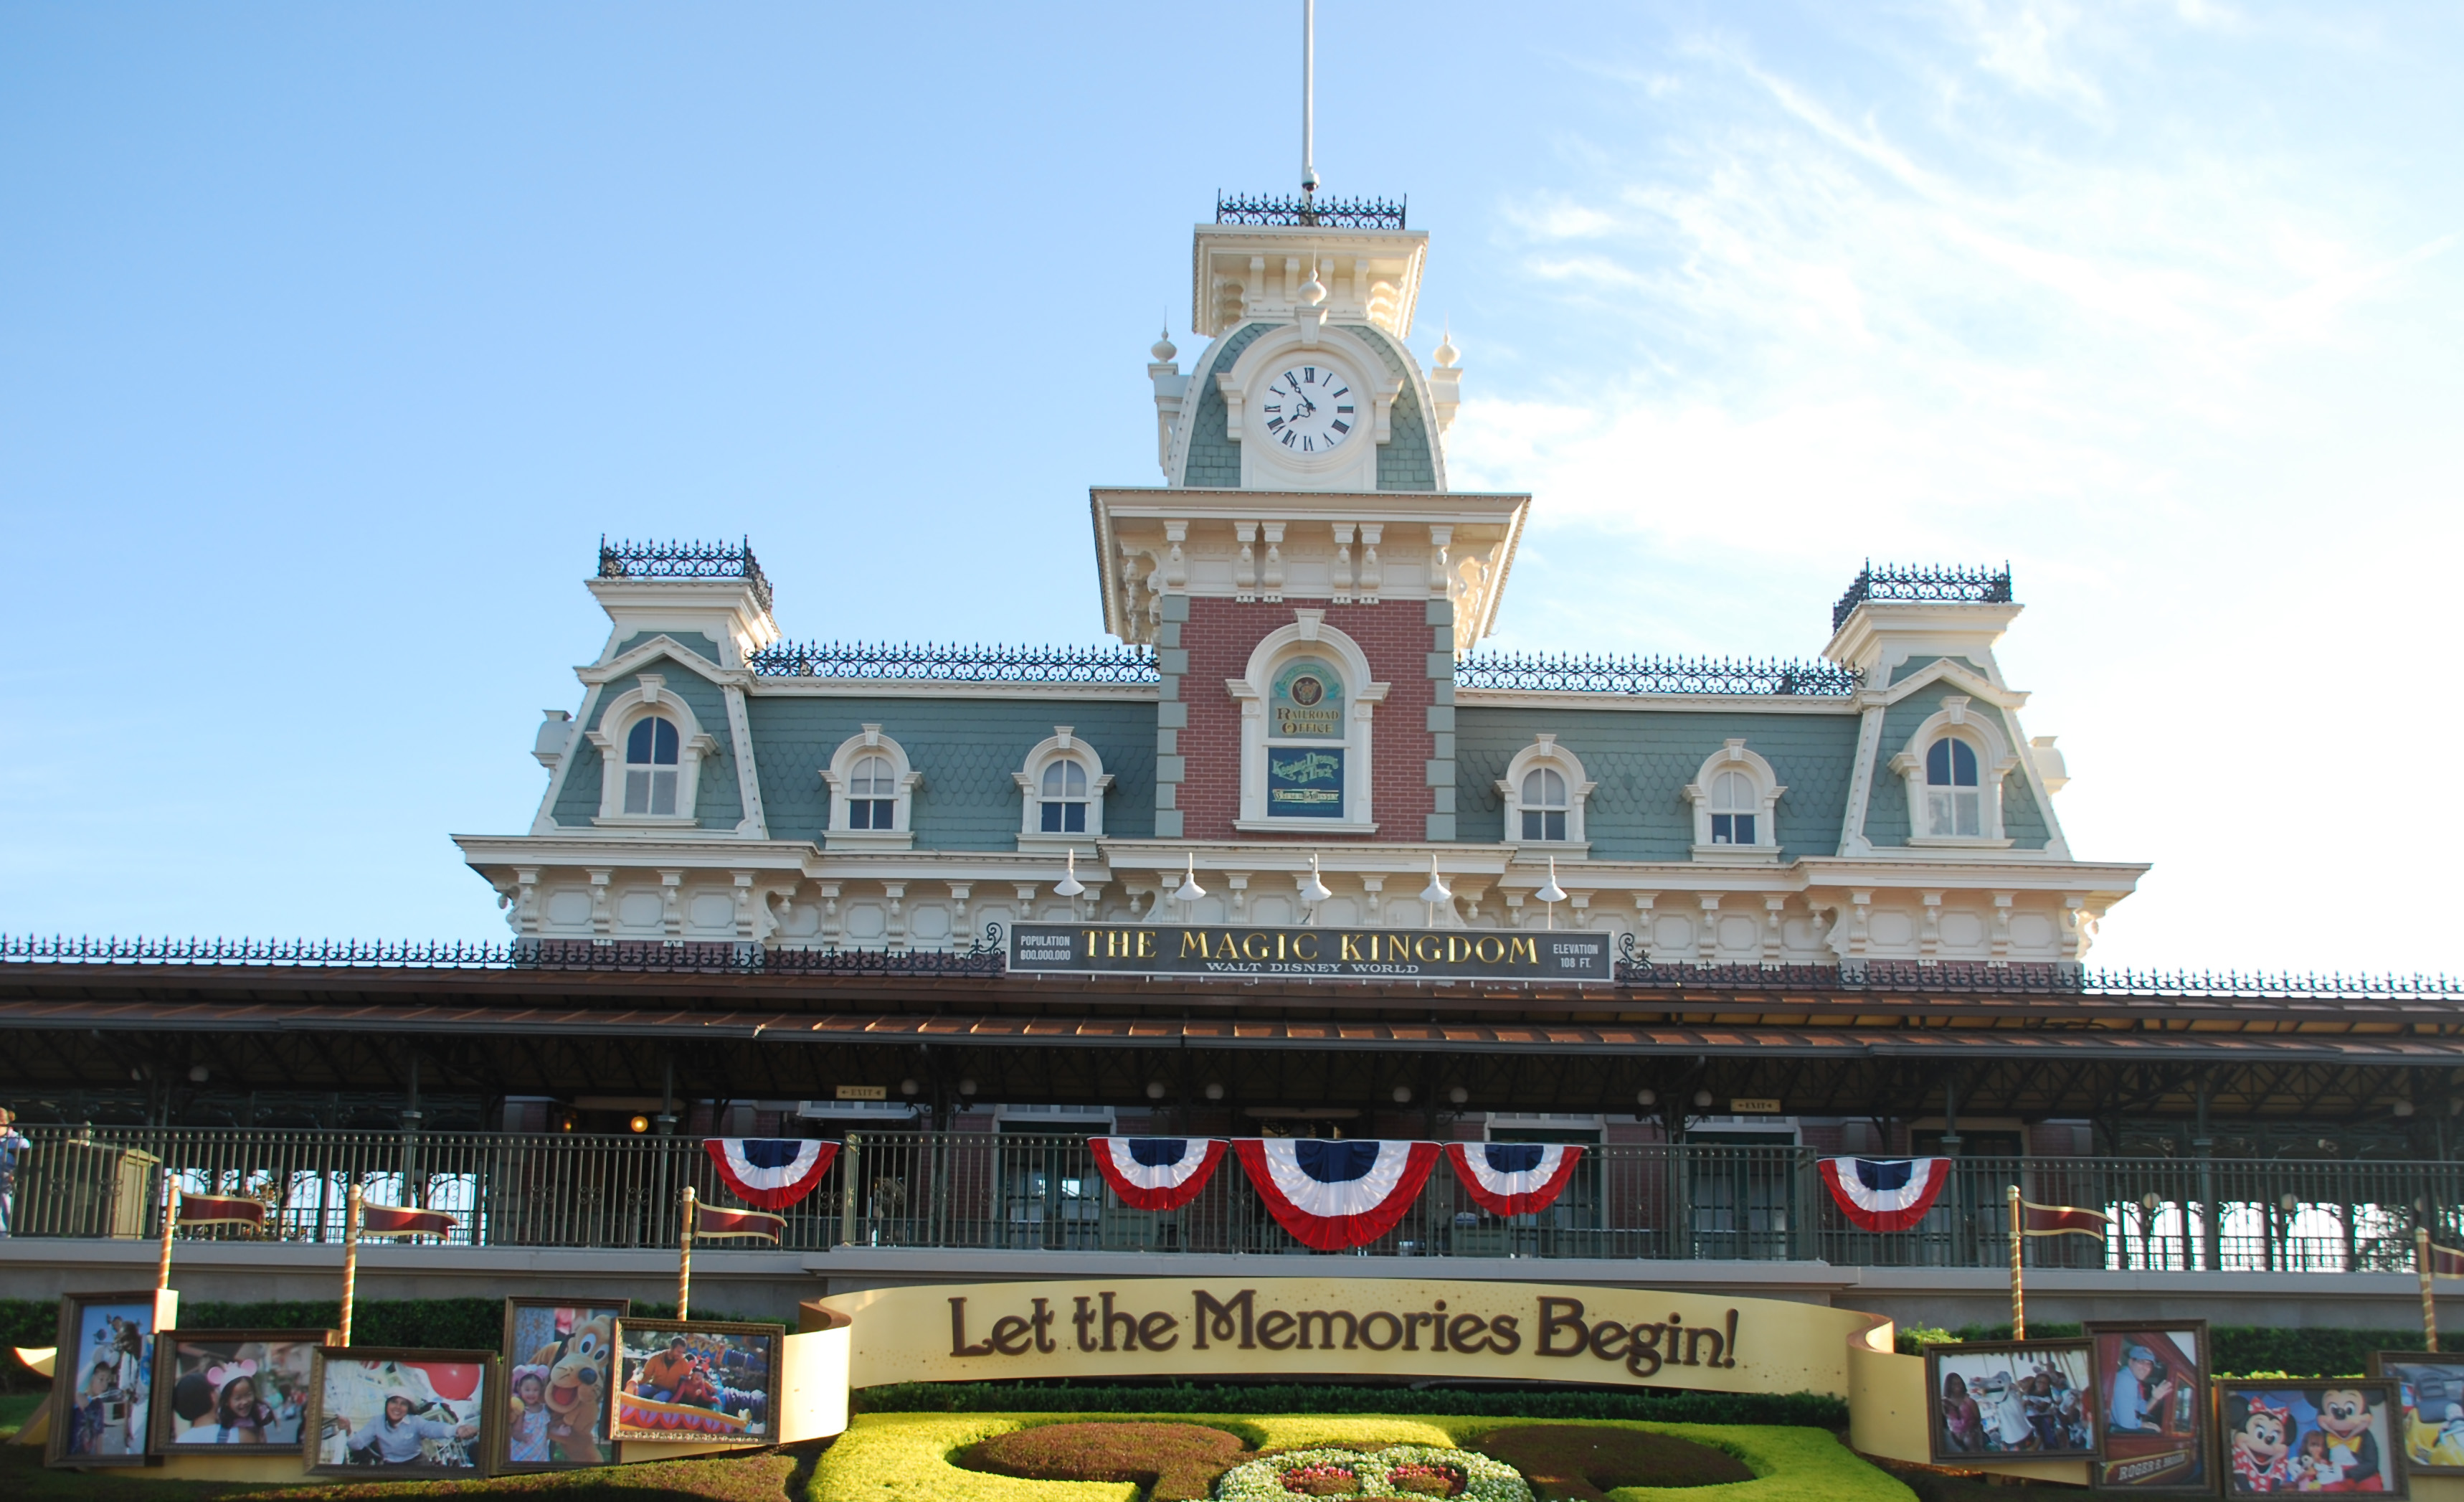 Walt Disney World – Orlando, Florida